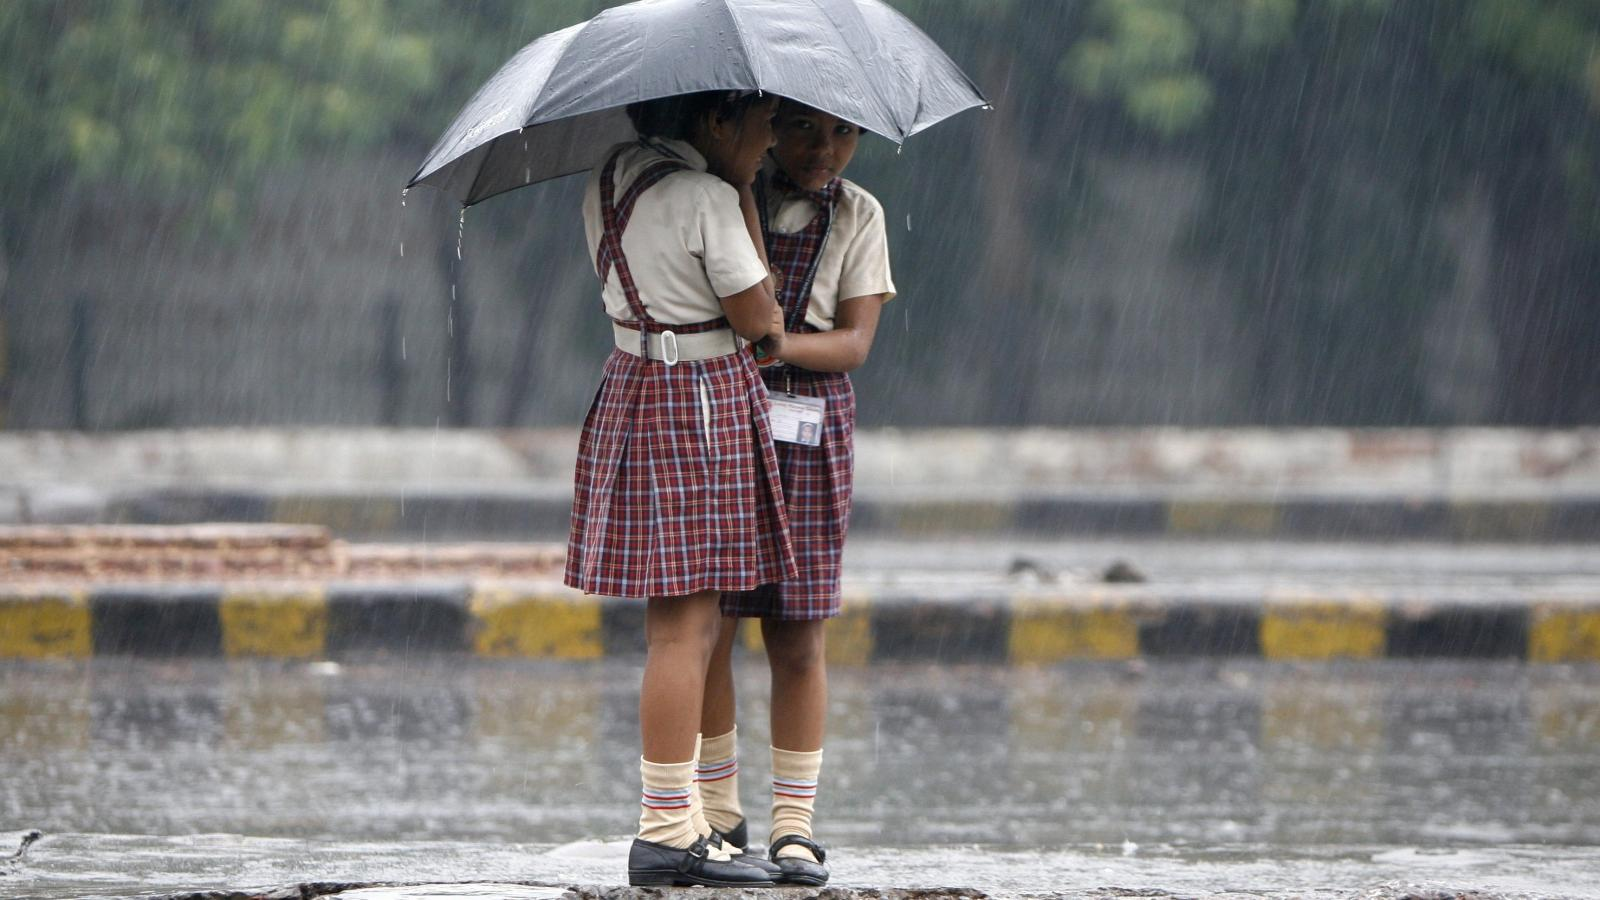 Will the monsoon wash away some of India's economic woes? — Quartz India